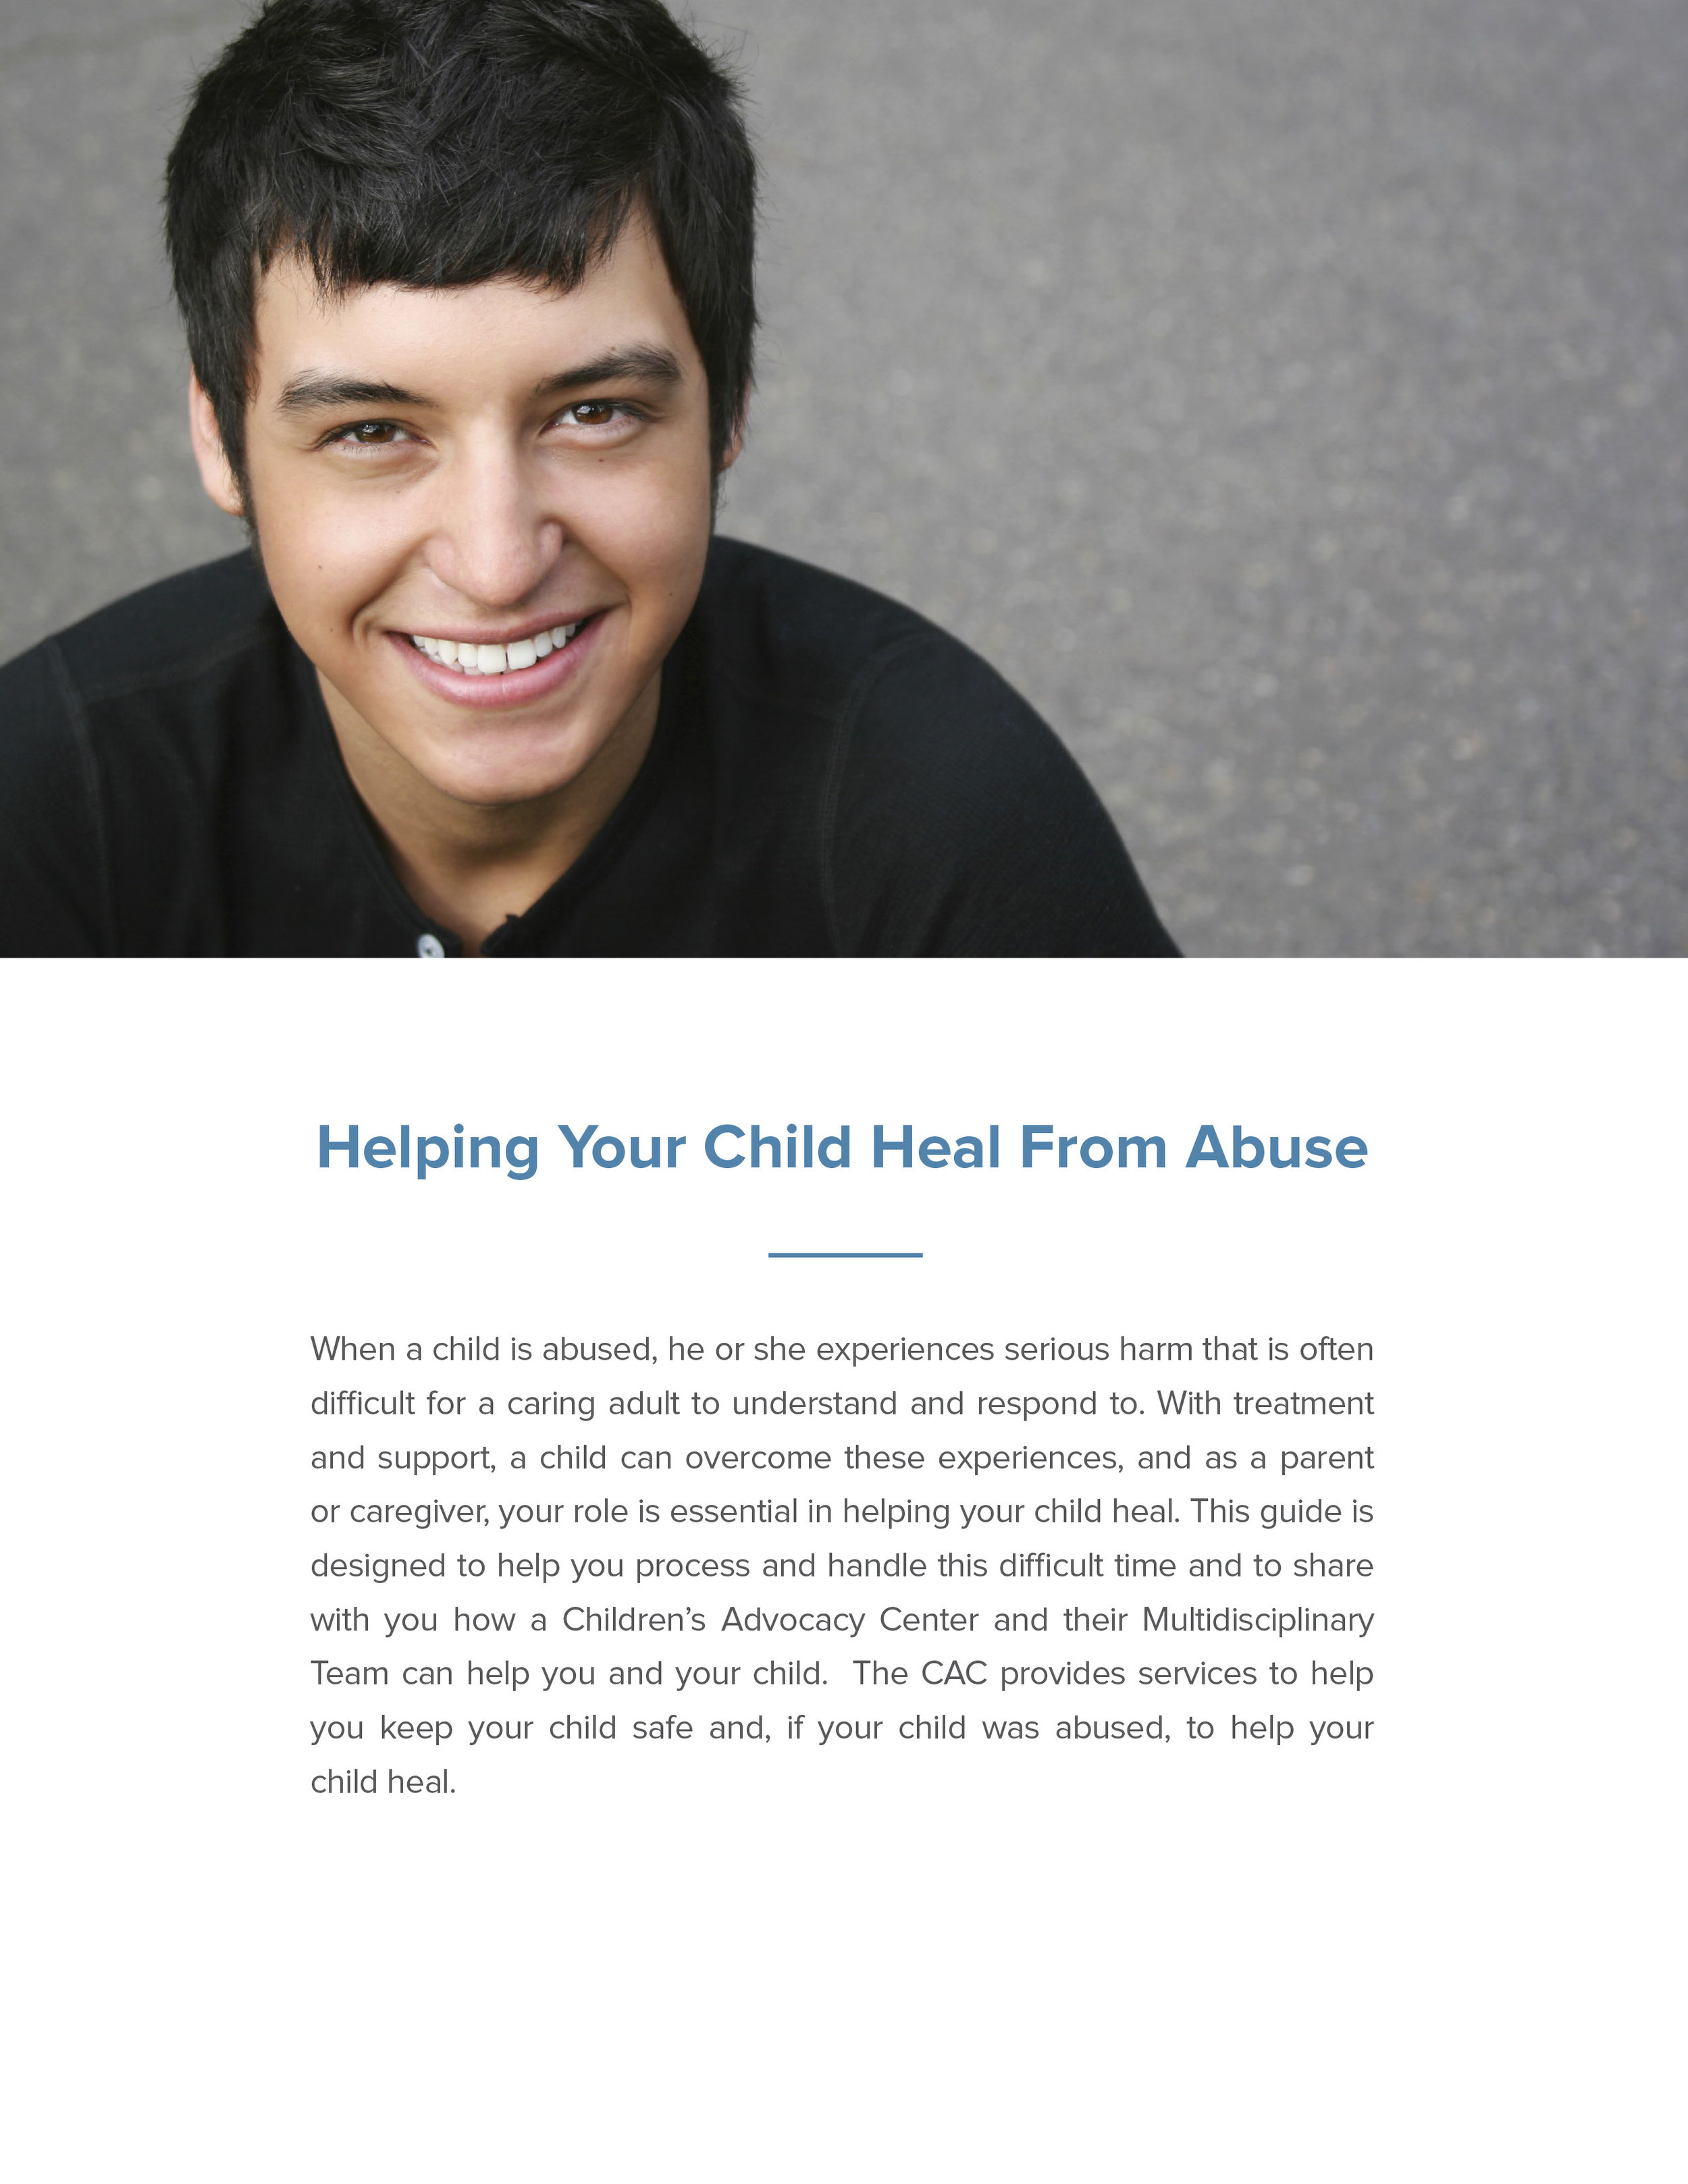 NCA Helping Your Children Heal From Abuse Brochure June2015 our logo-2 copy - Copy.jpg